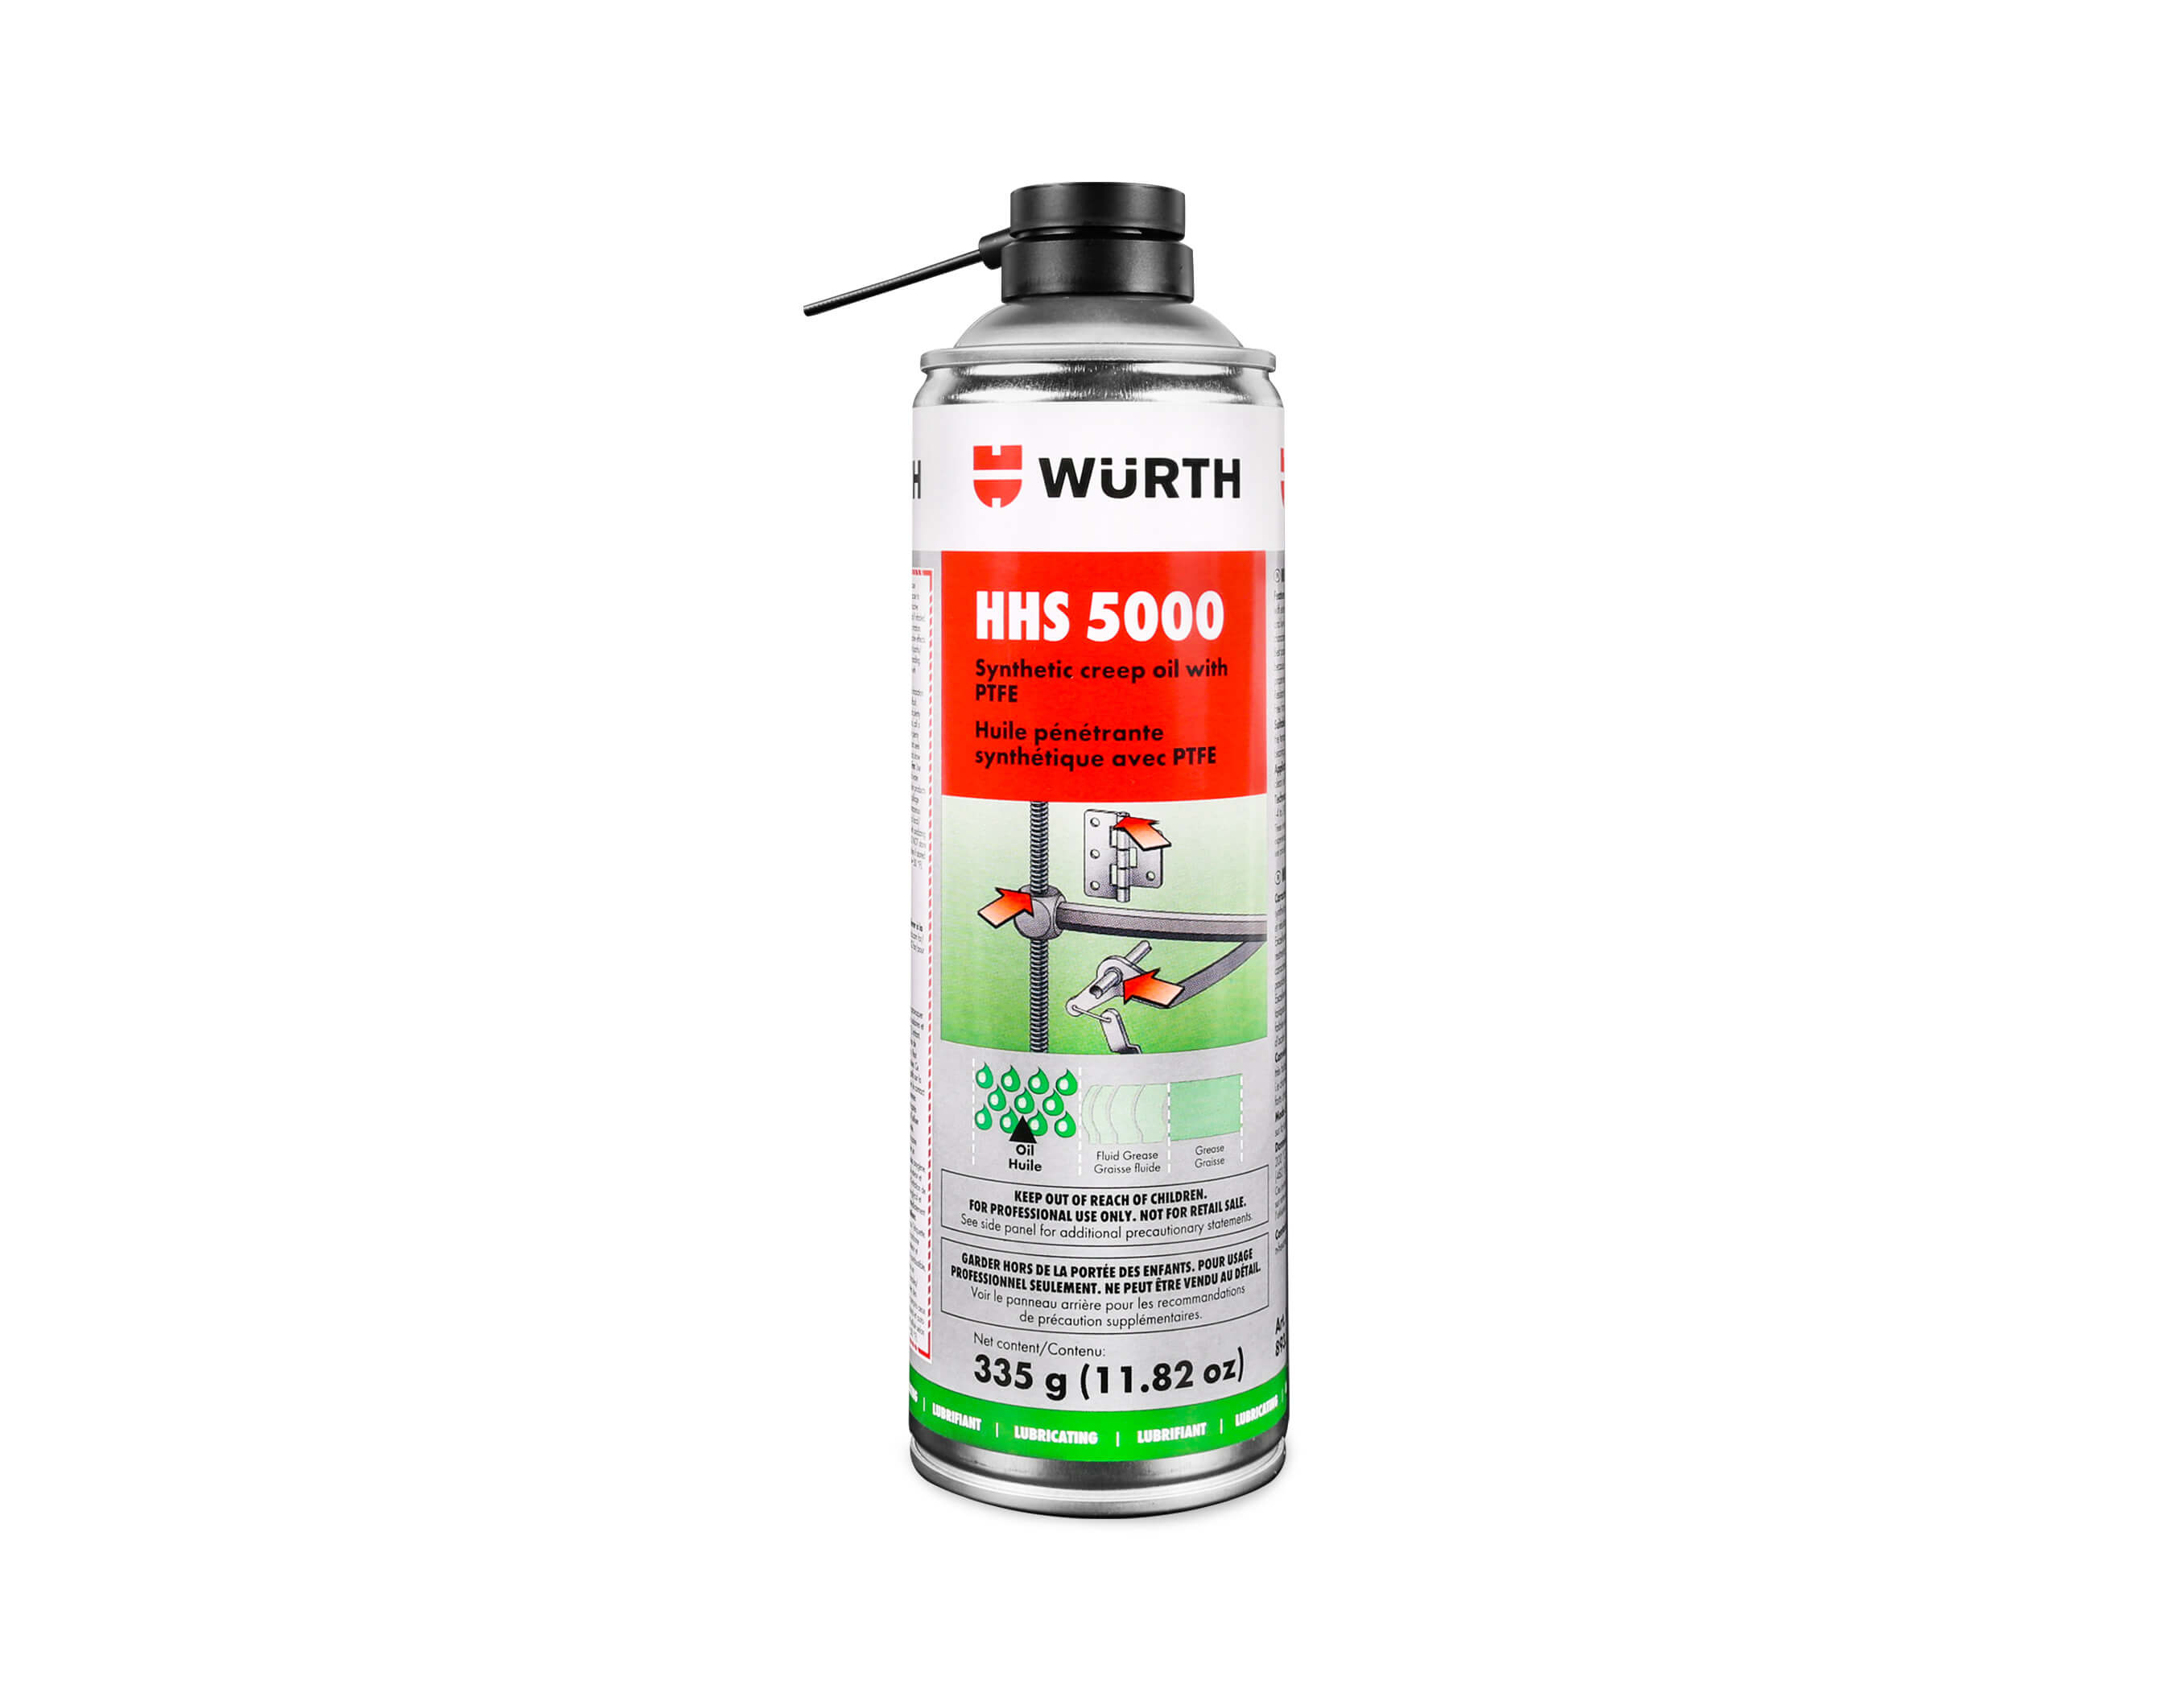 hhs 5000 lubricants synthetic lubricant wurth canada. Black Bedroom Furniture Sets. Home Design Ideas